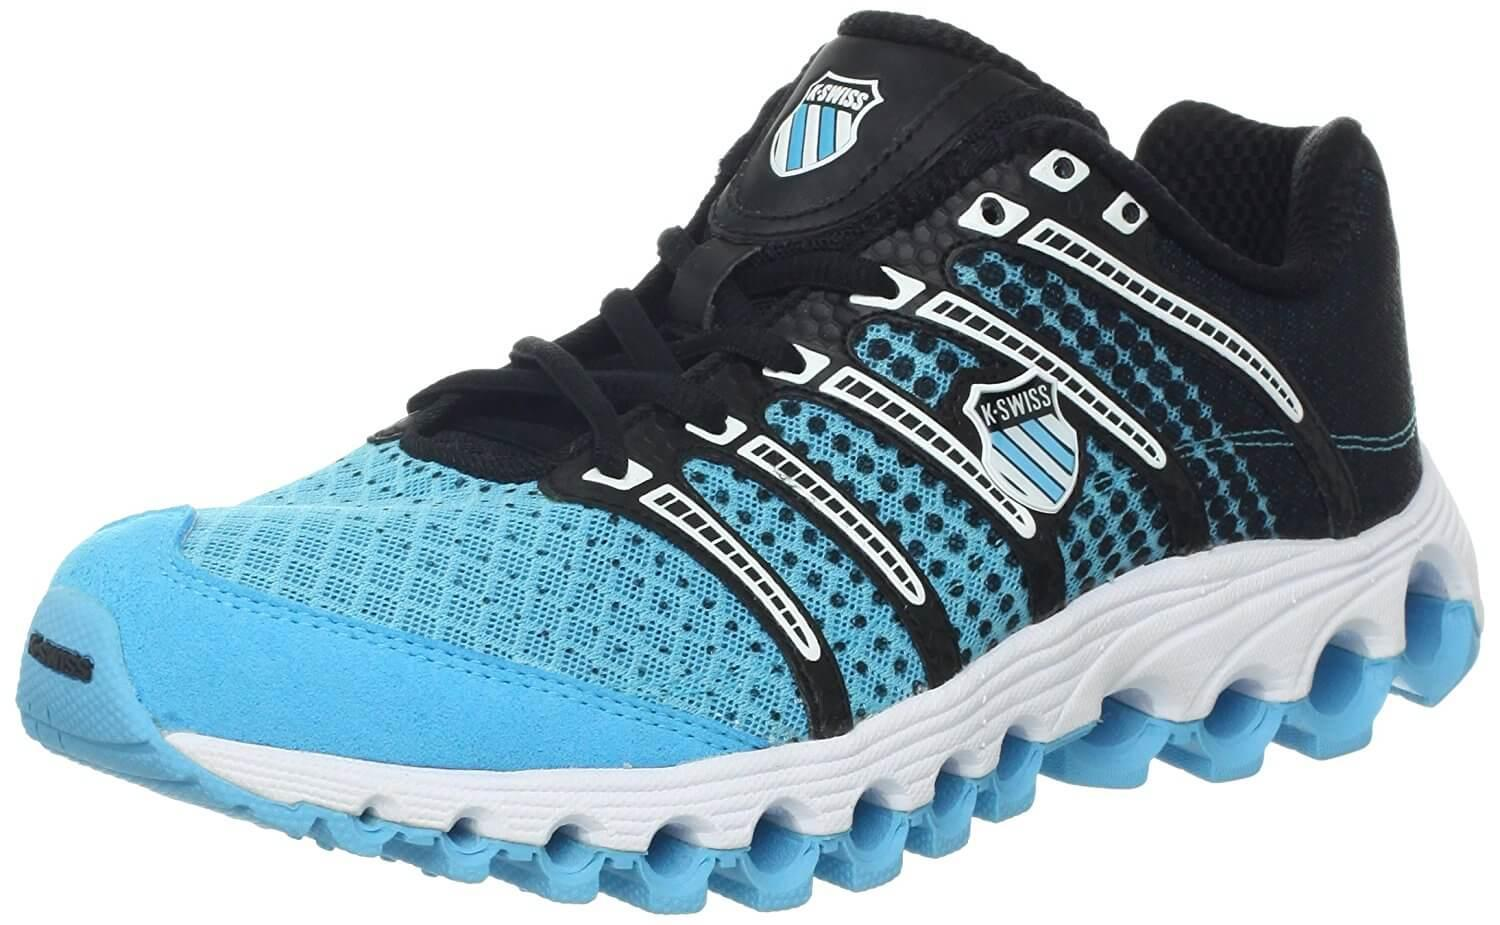 Best K-Swiss Running Shoes Reviewed in